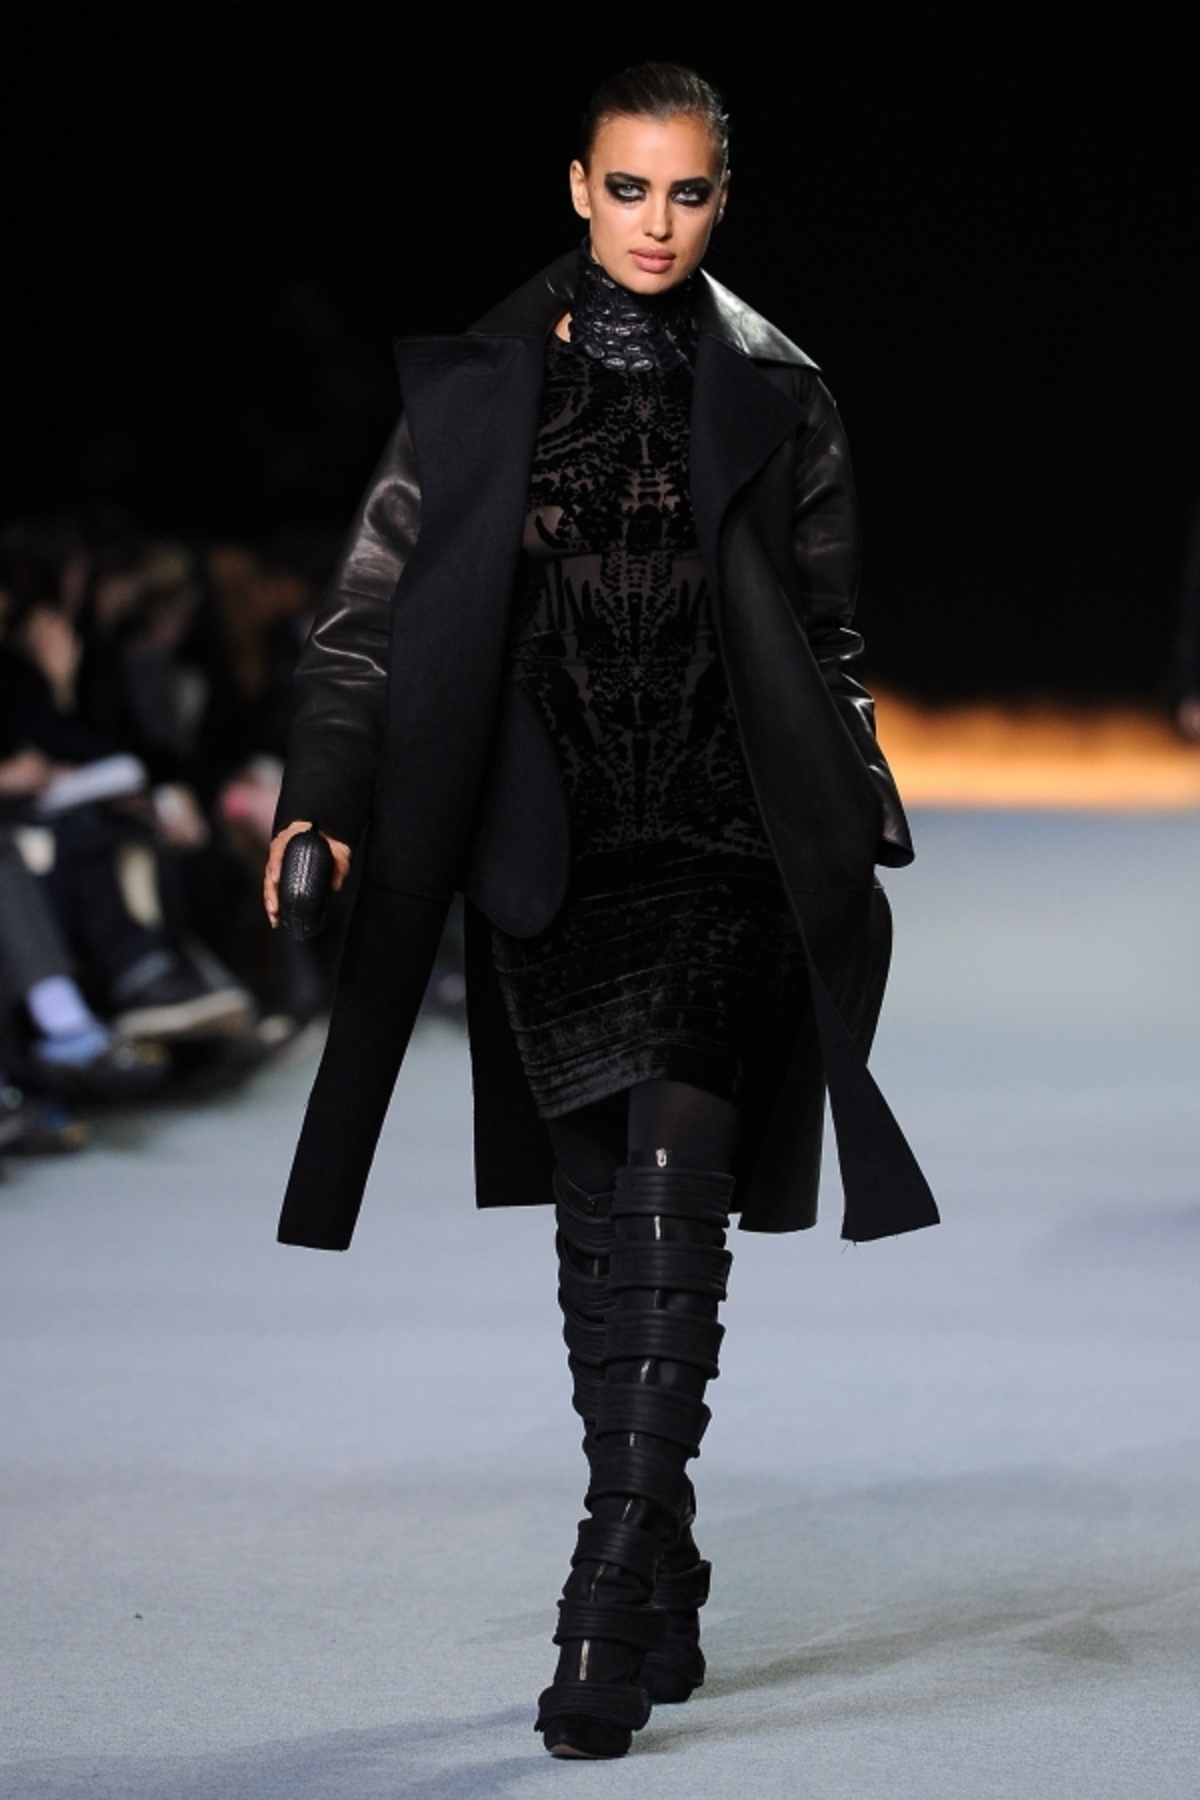 normal_Review-Pictures-Kanye-West-Autumn-Winter-2012-Paris-Fashion-Week-Runway-Show